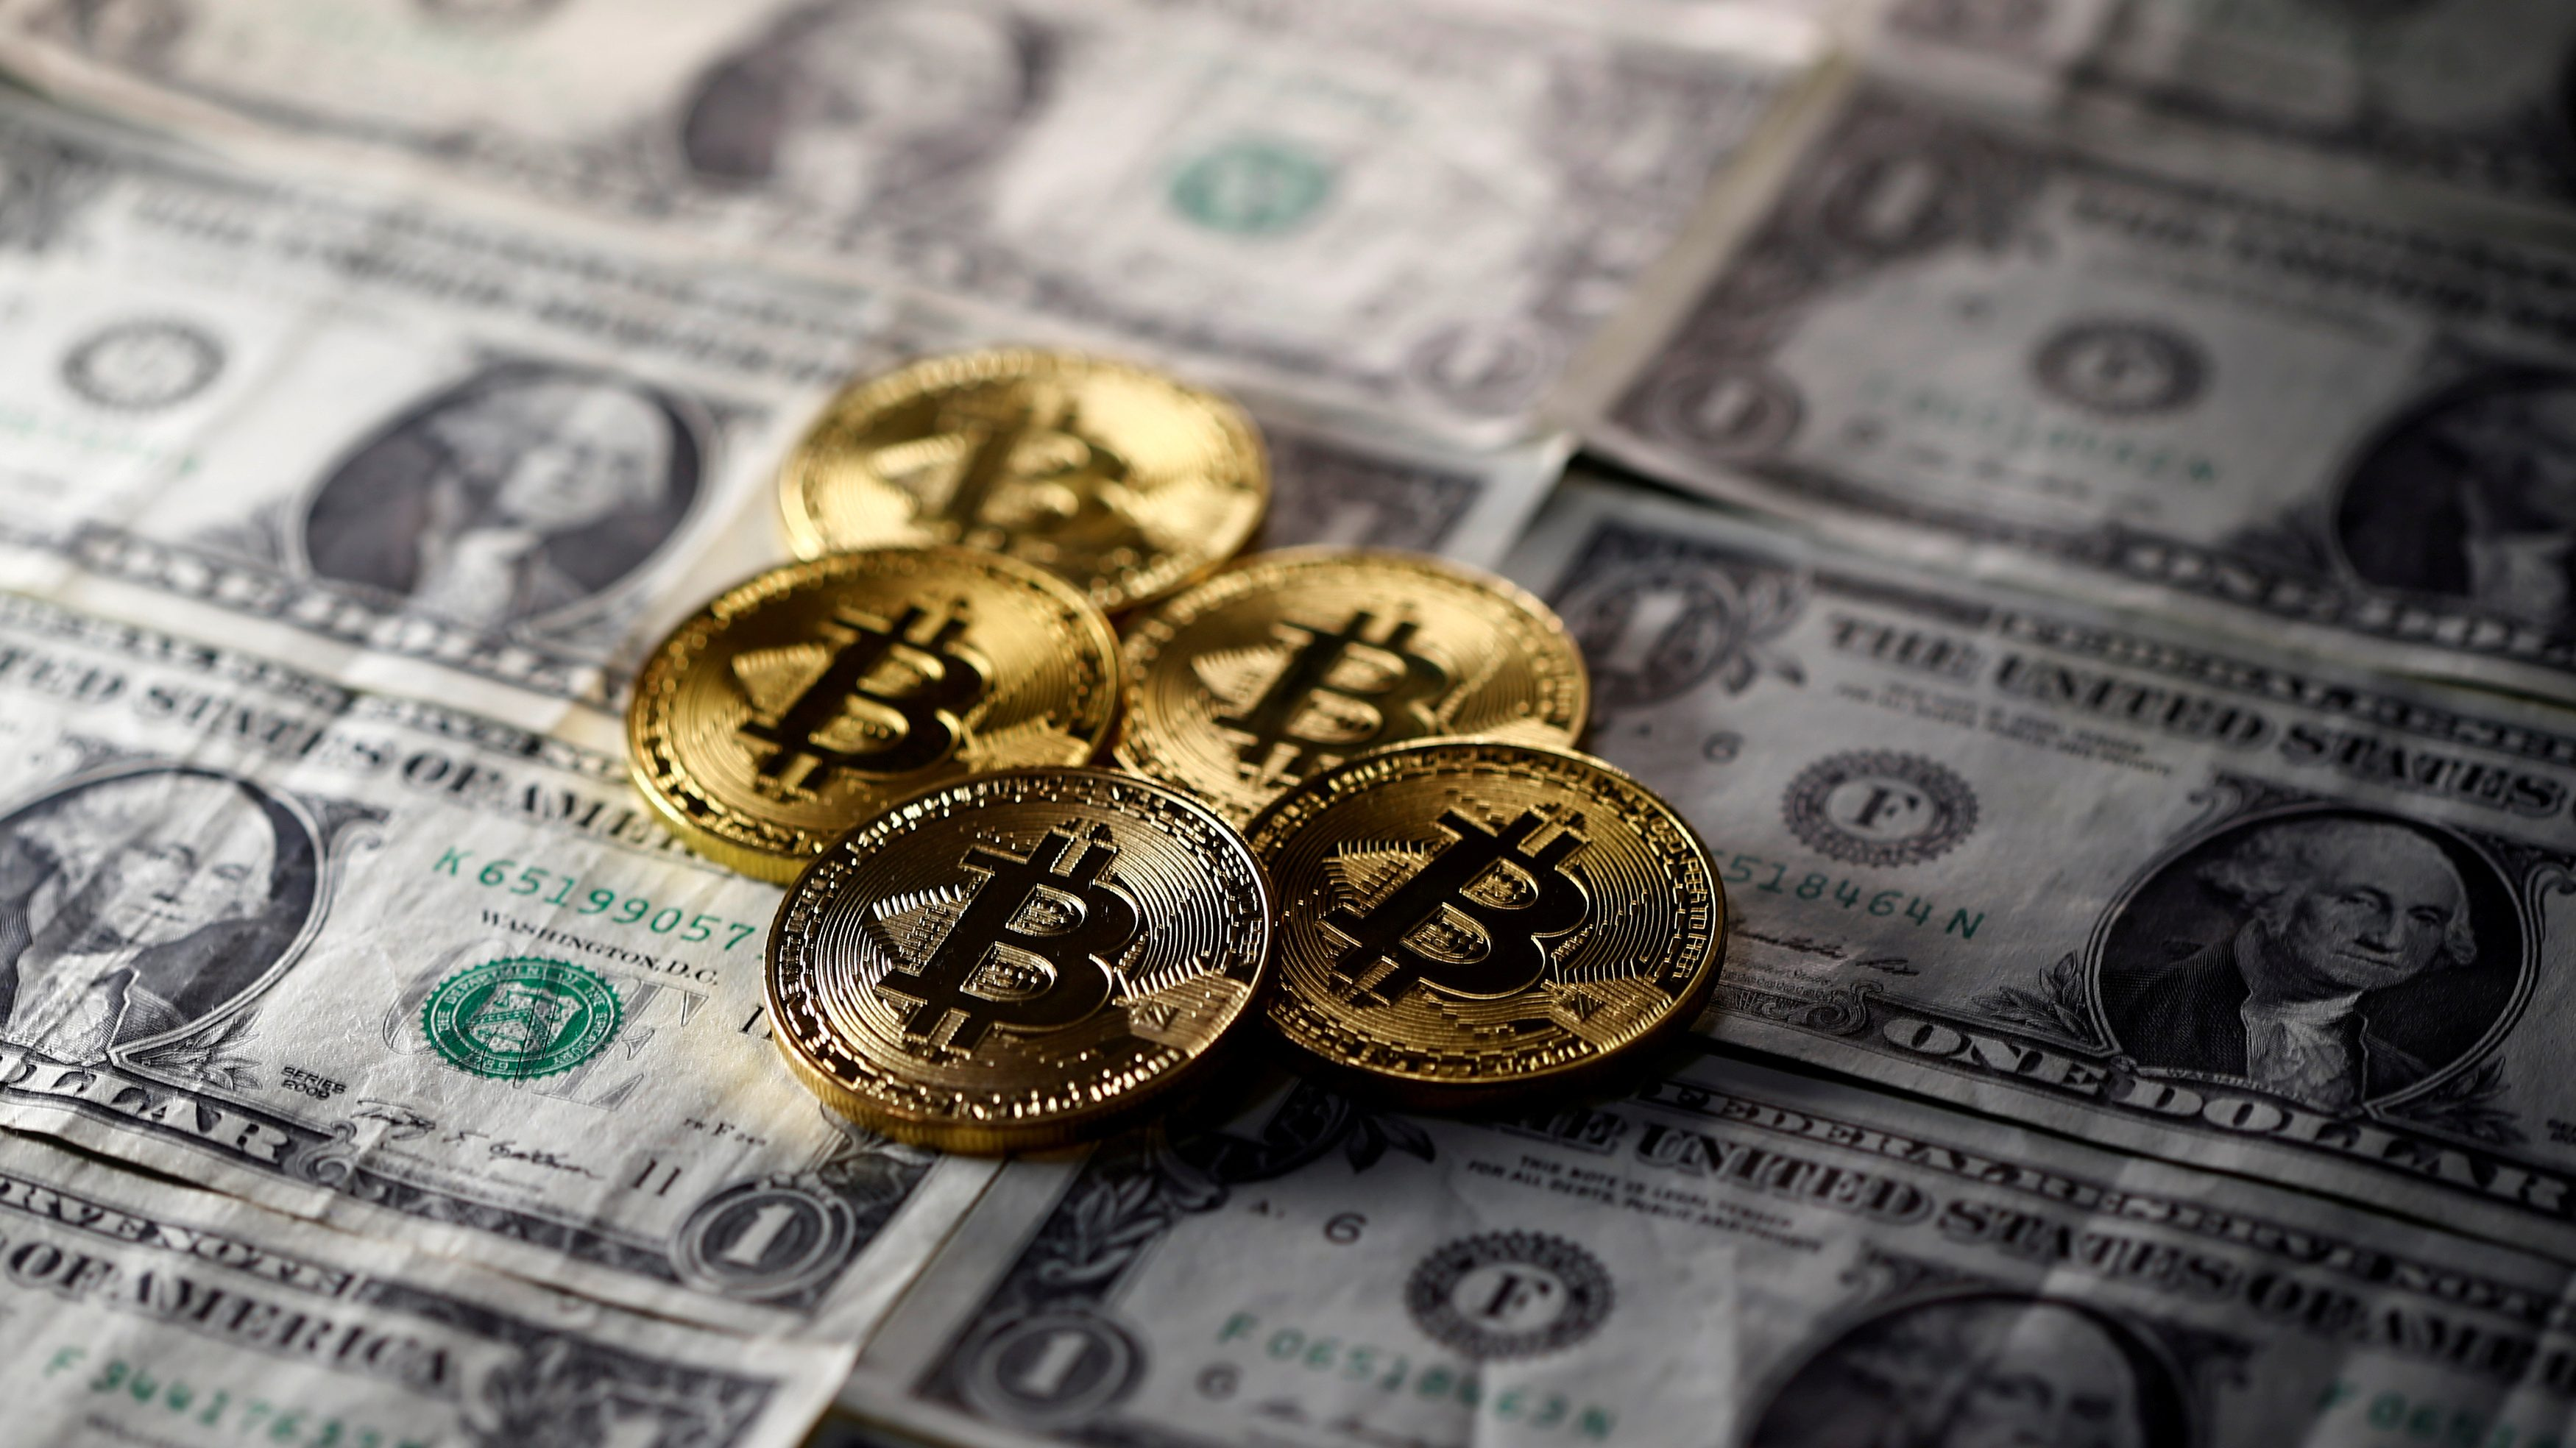 FILE PHOTO: Bitcoin (virtual currency) coins placed on Dollar banknotes are seen in this illustration picture, November 6, 2017. REUTERS/Dado Ruvic/Illustration/File Photo - RC14C93905D0